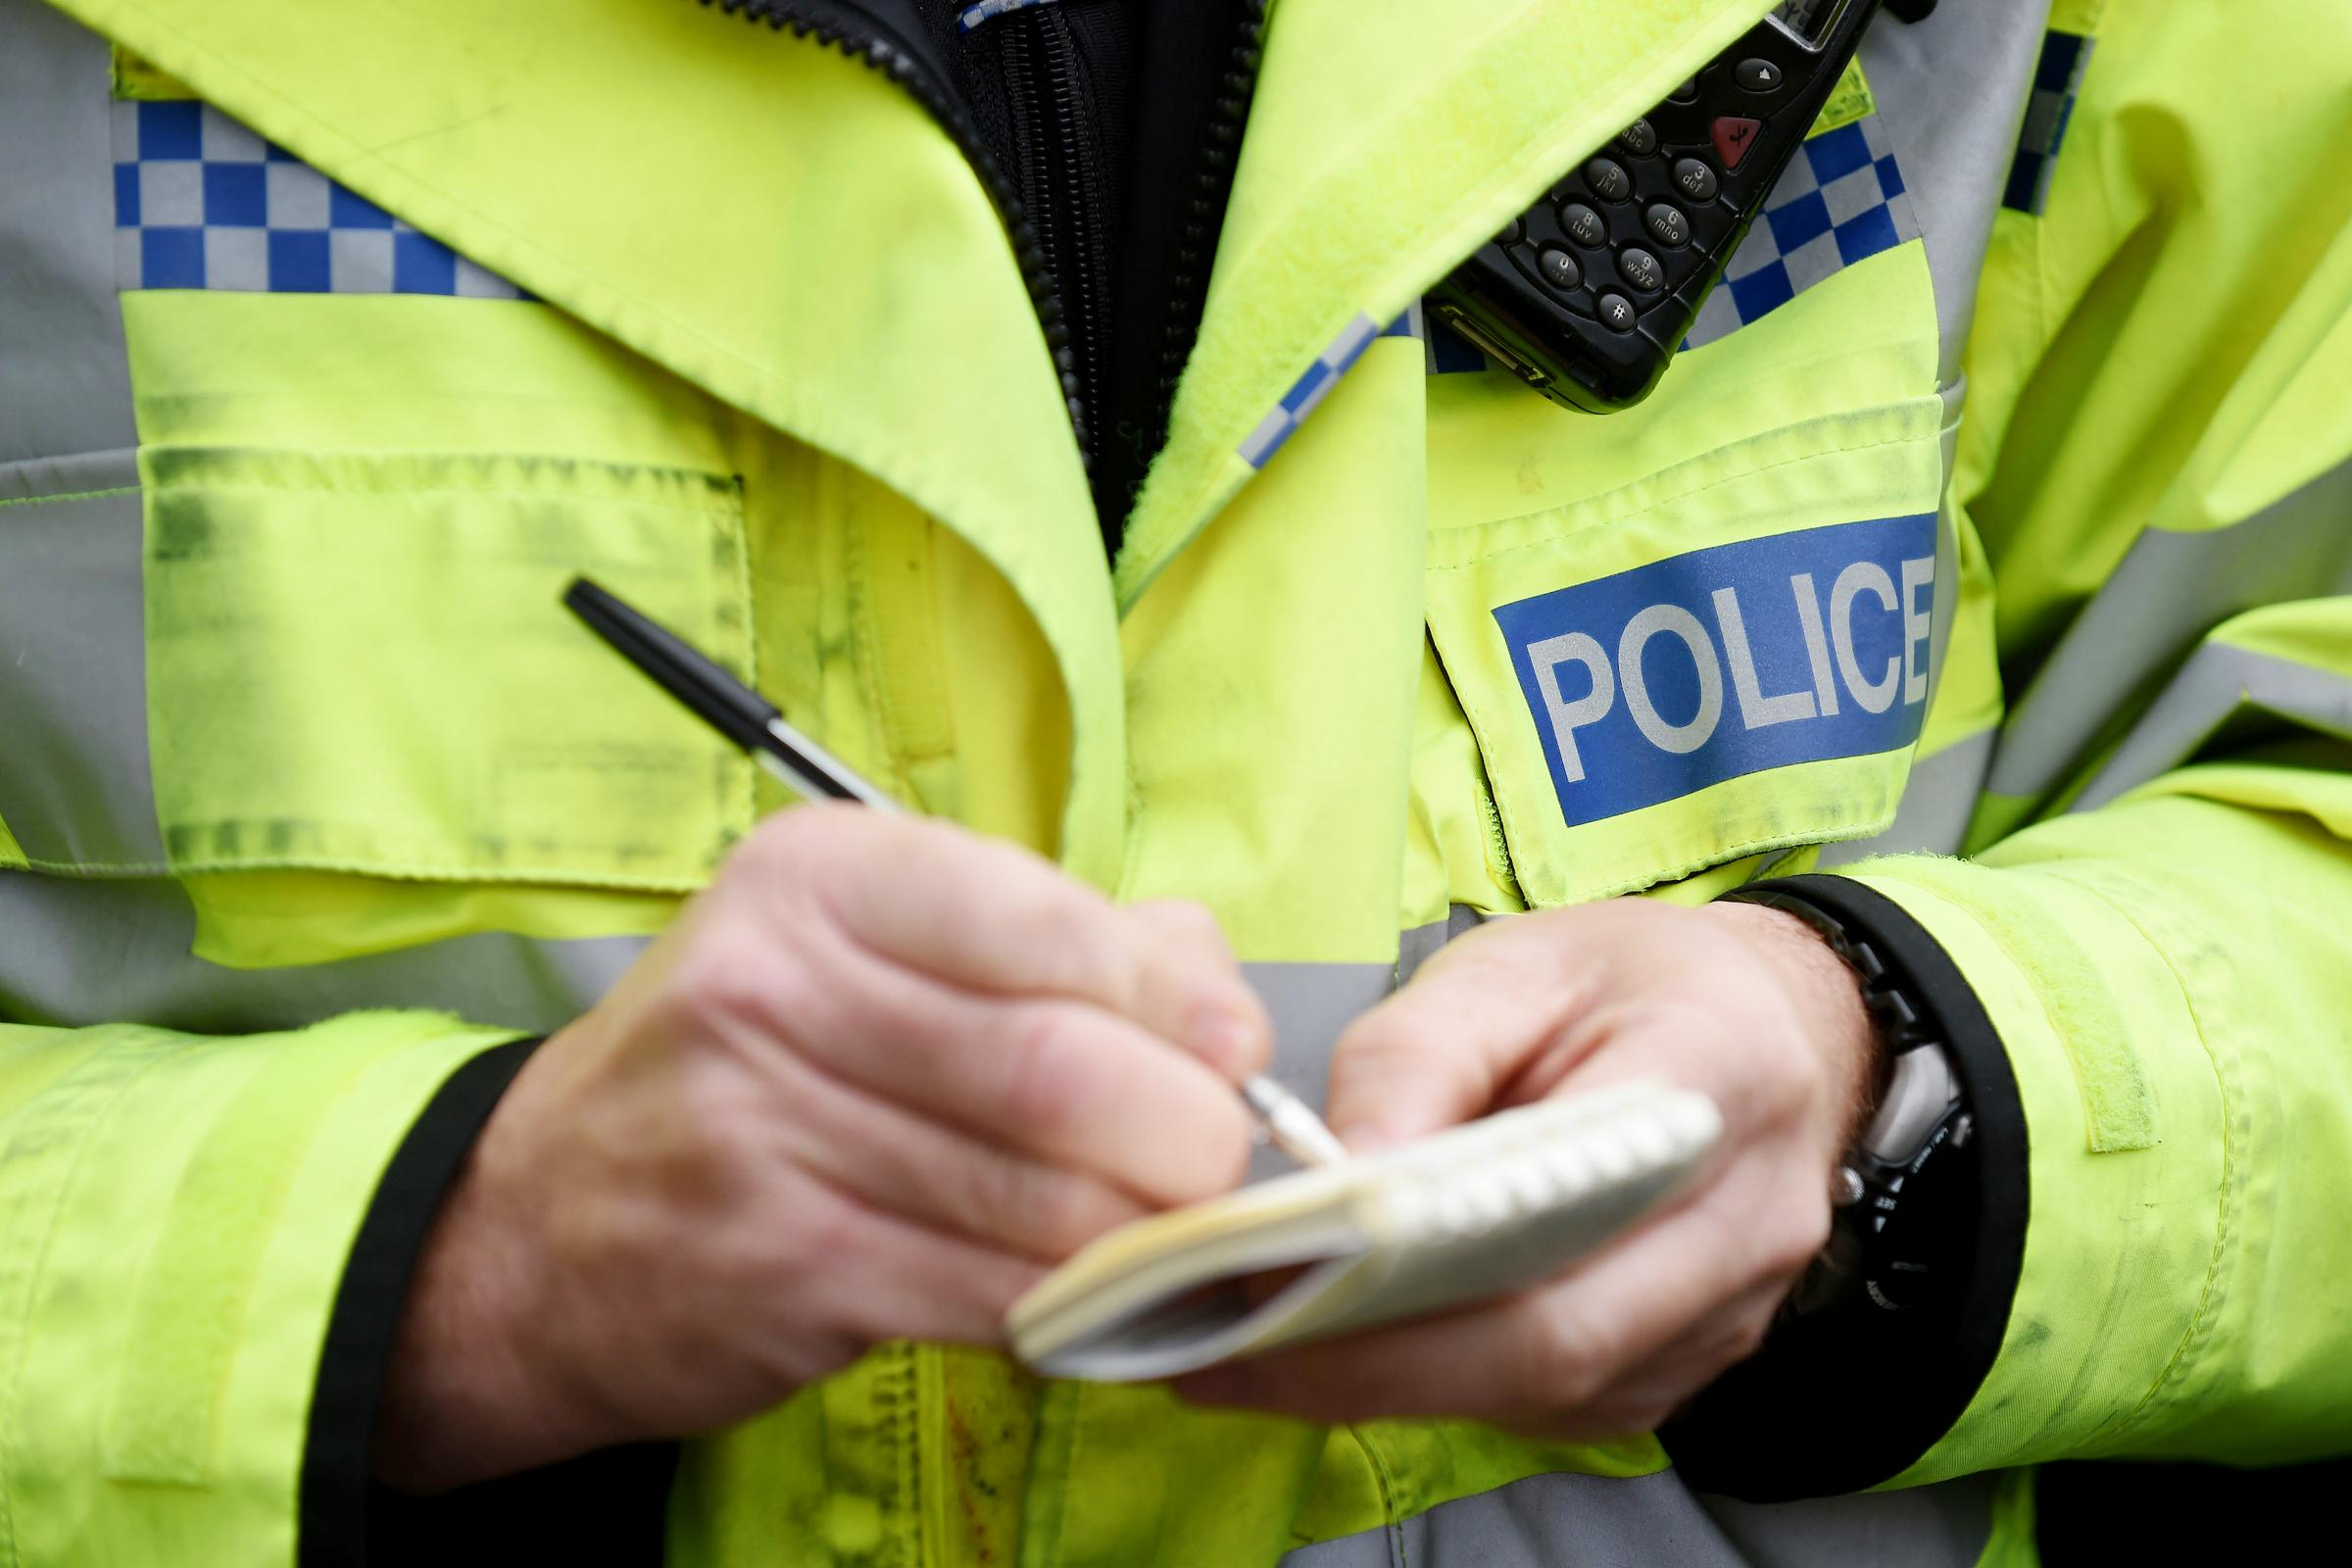 Police will carry out crime prevention patrols